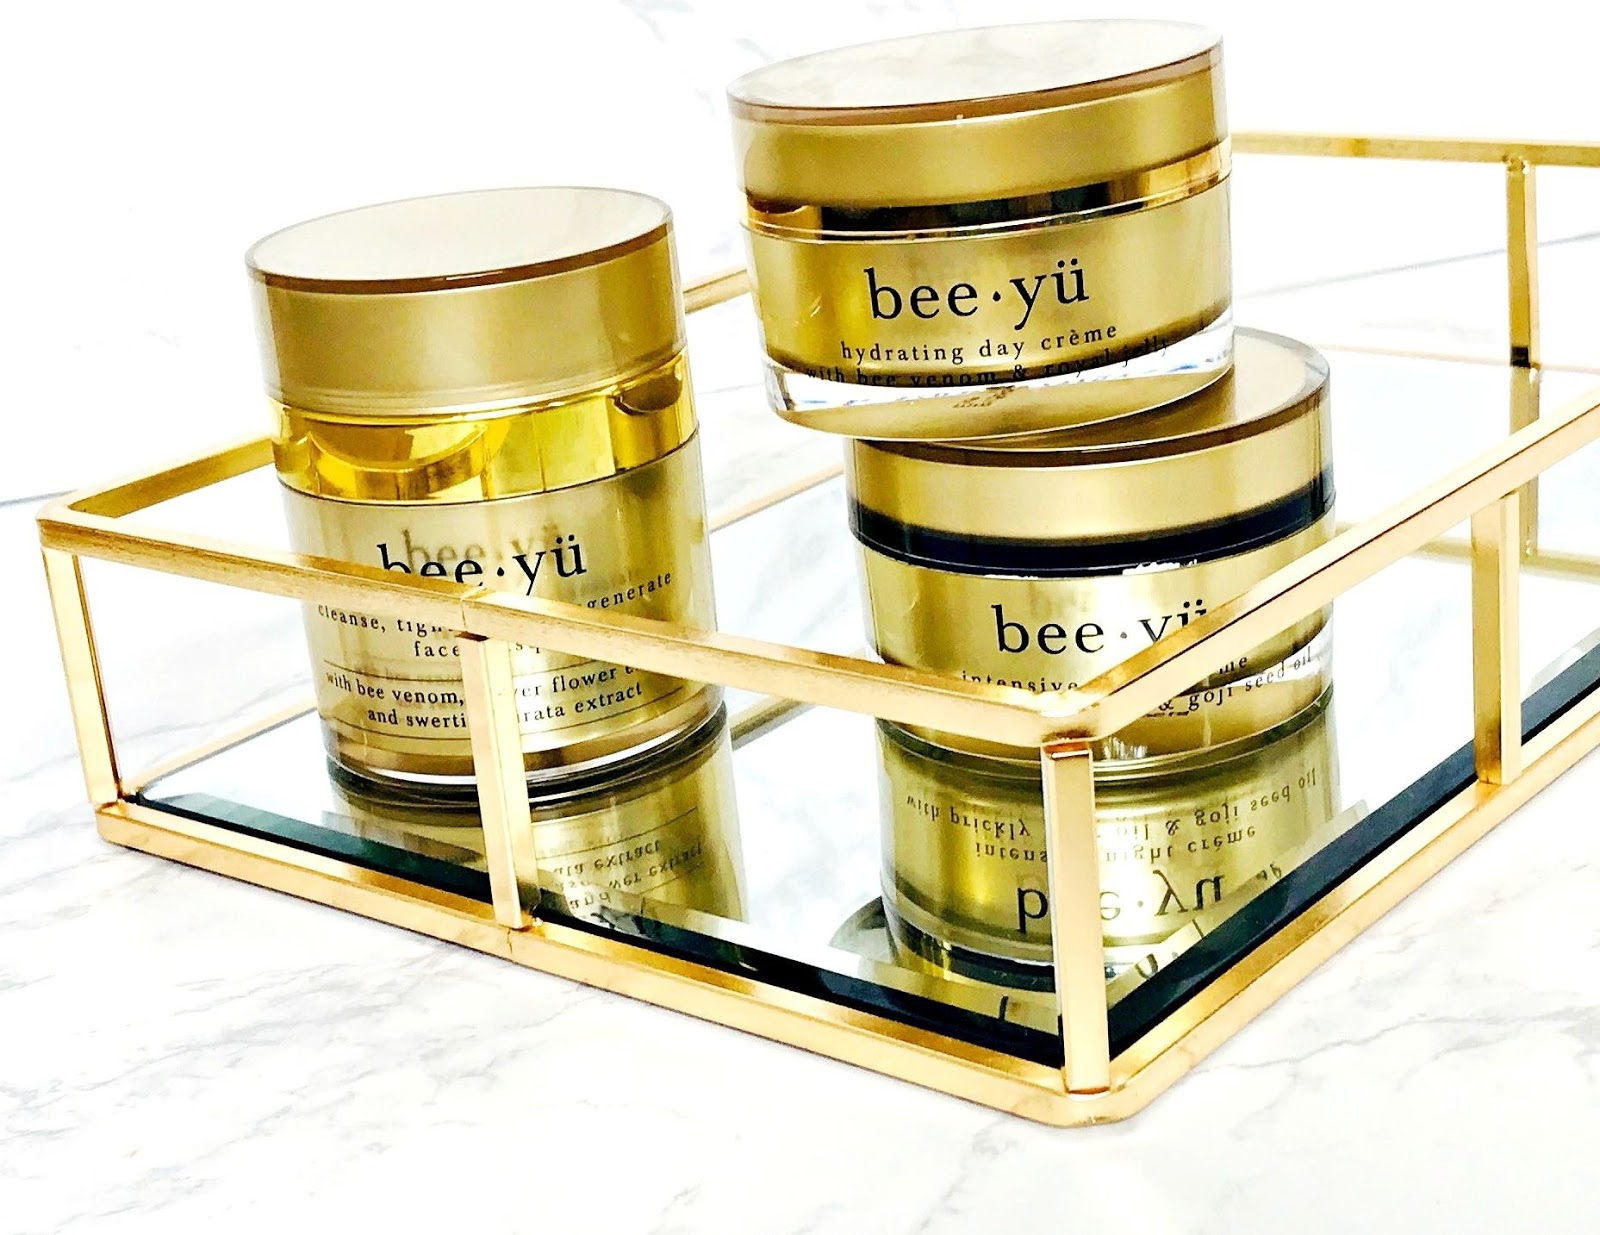 Bee-Yu skincare review, BEE YÜ FIRMING + REGENERATING FACE MASQUE, BEE YÜ INTENSIVE NIGHT CRÉME, BEE YÜ ULTRA-HYDRATING DAY CRÉME, Skincare giveaway